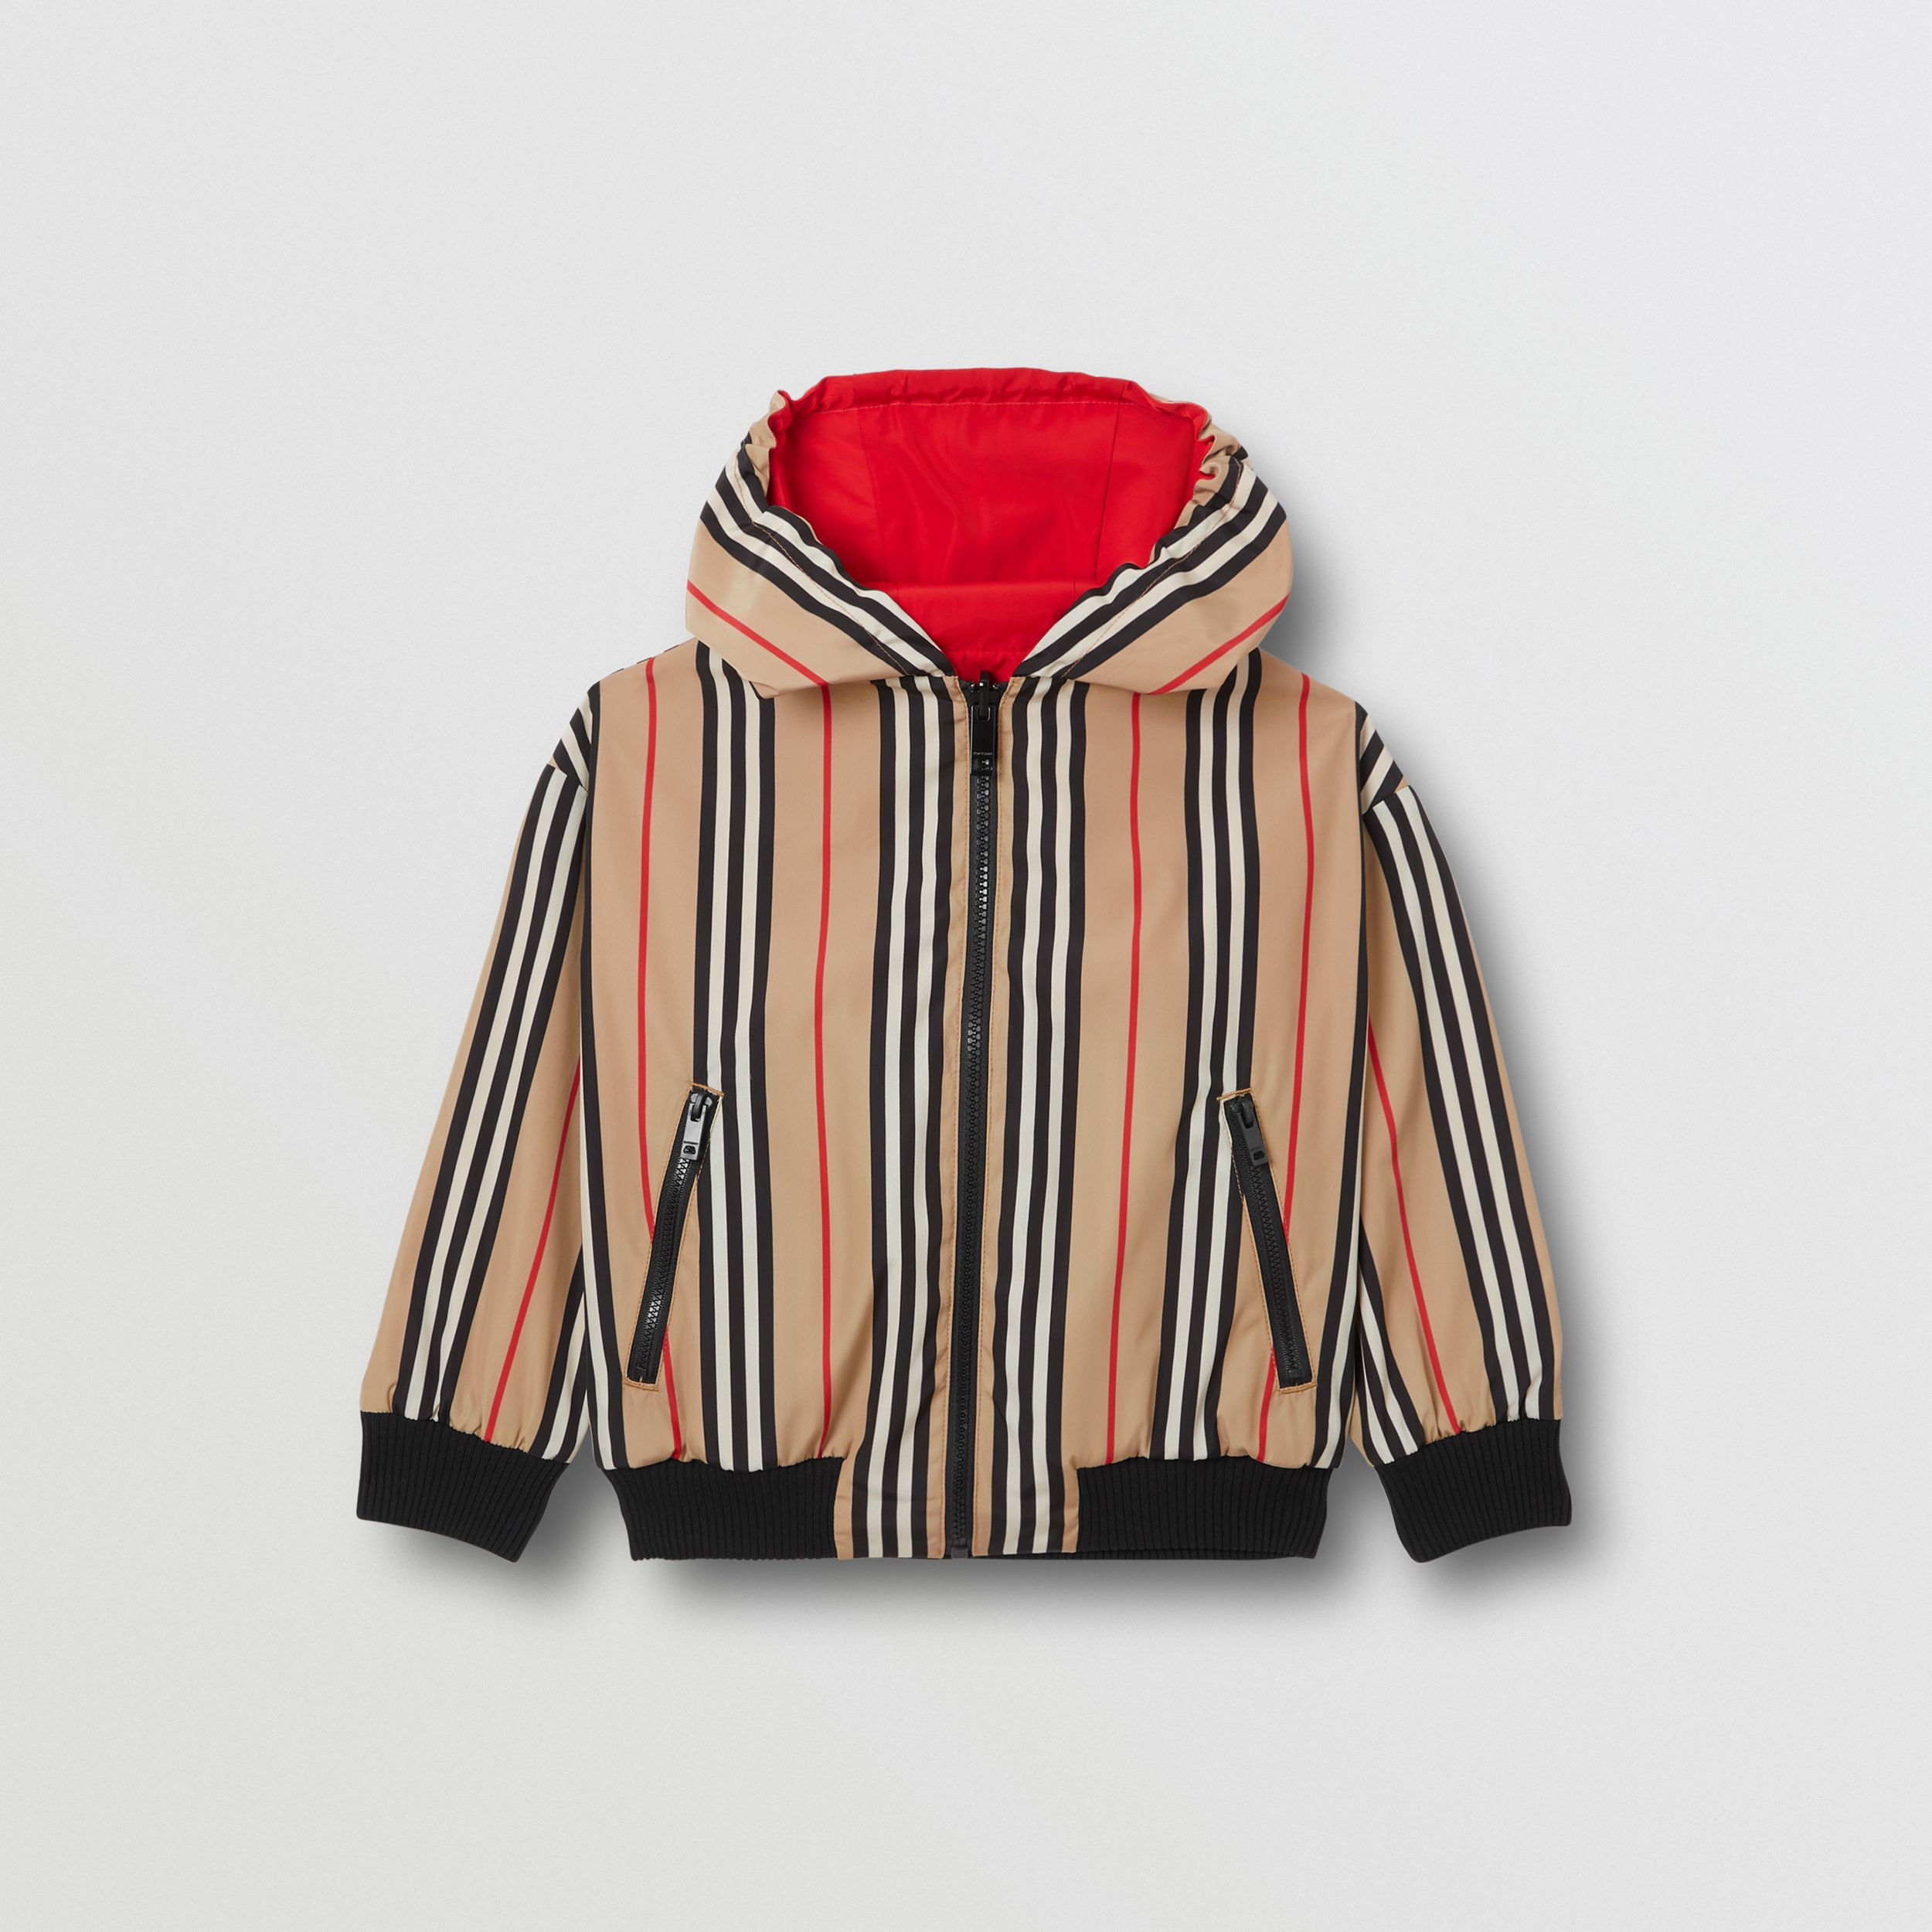 Reversible Icon Stripe Hooded Jacket in Bright Red | Burberry - 1